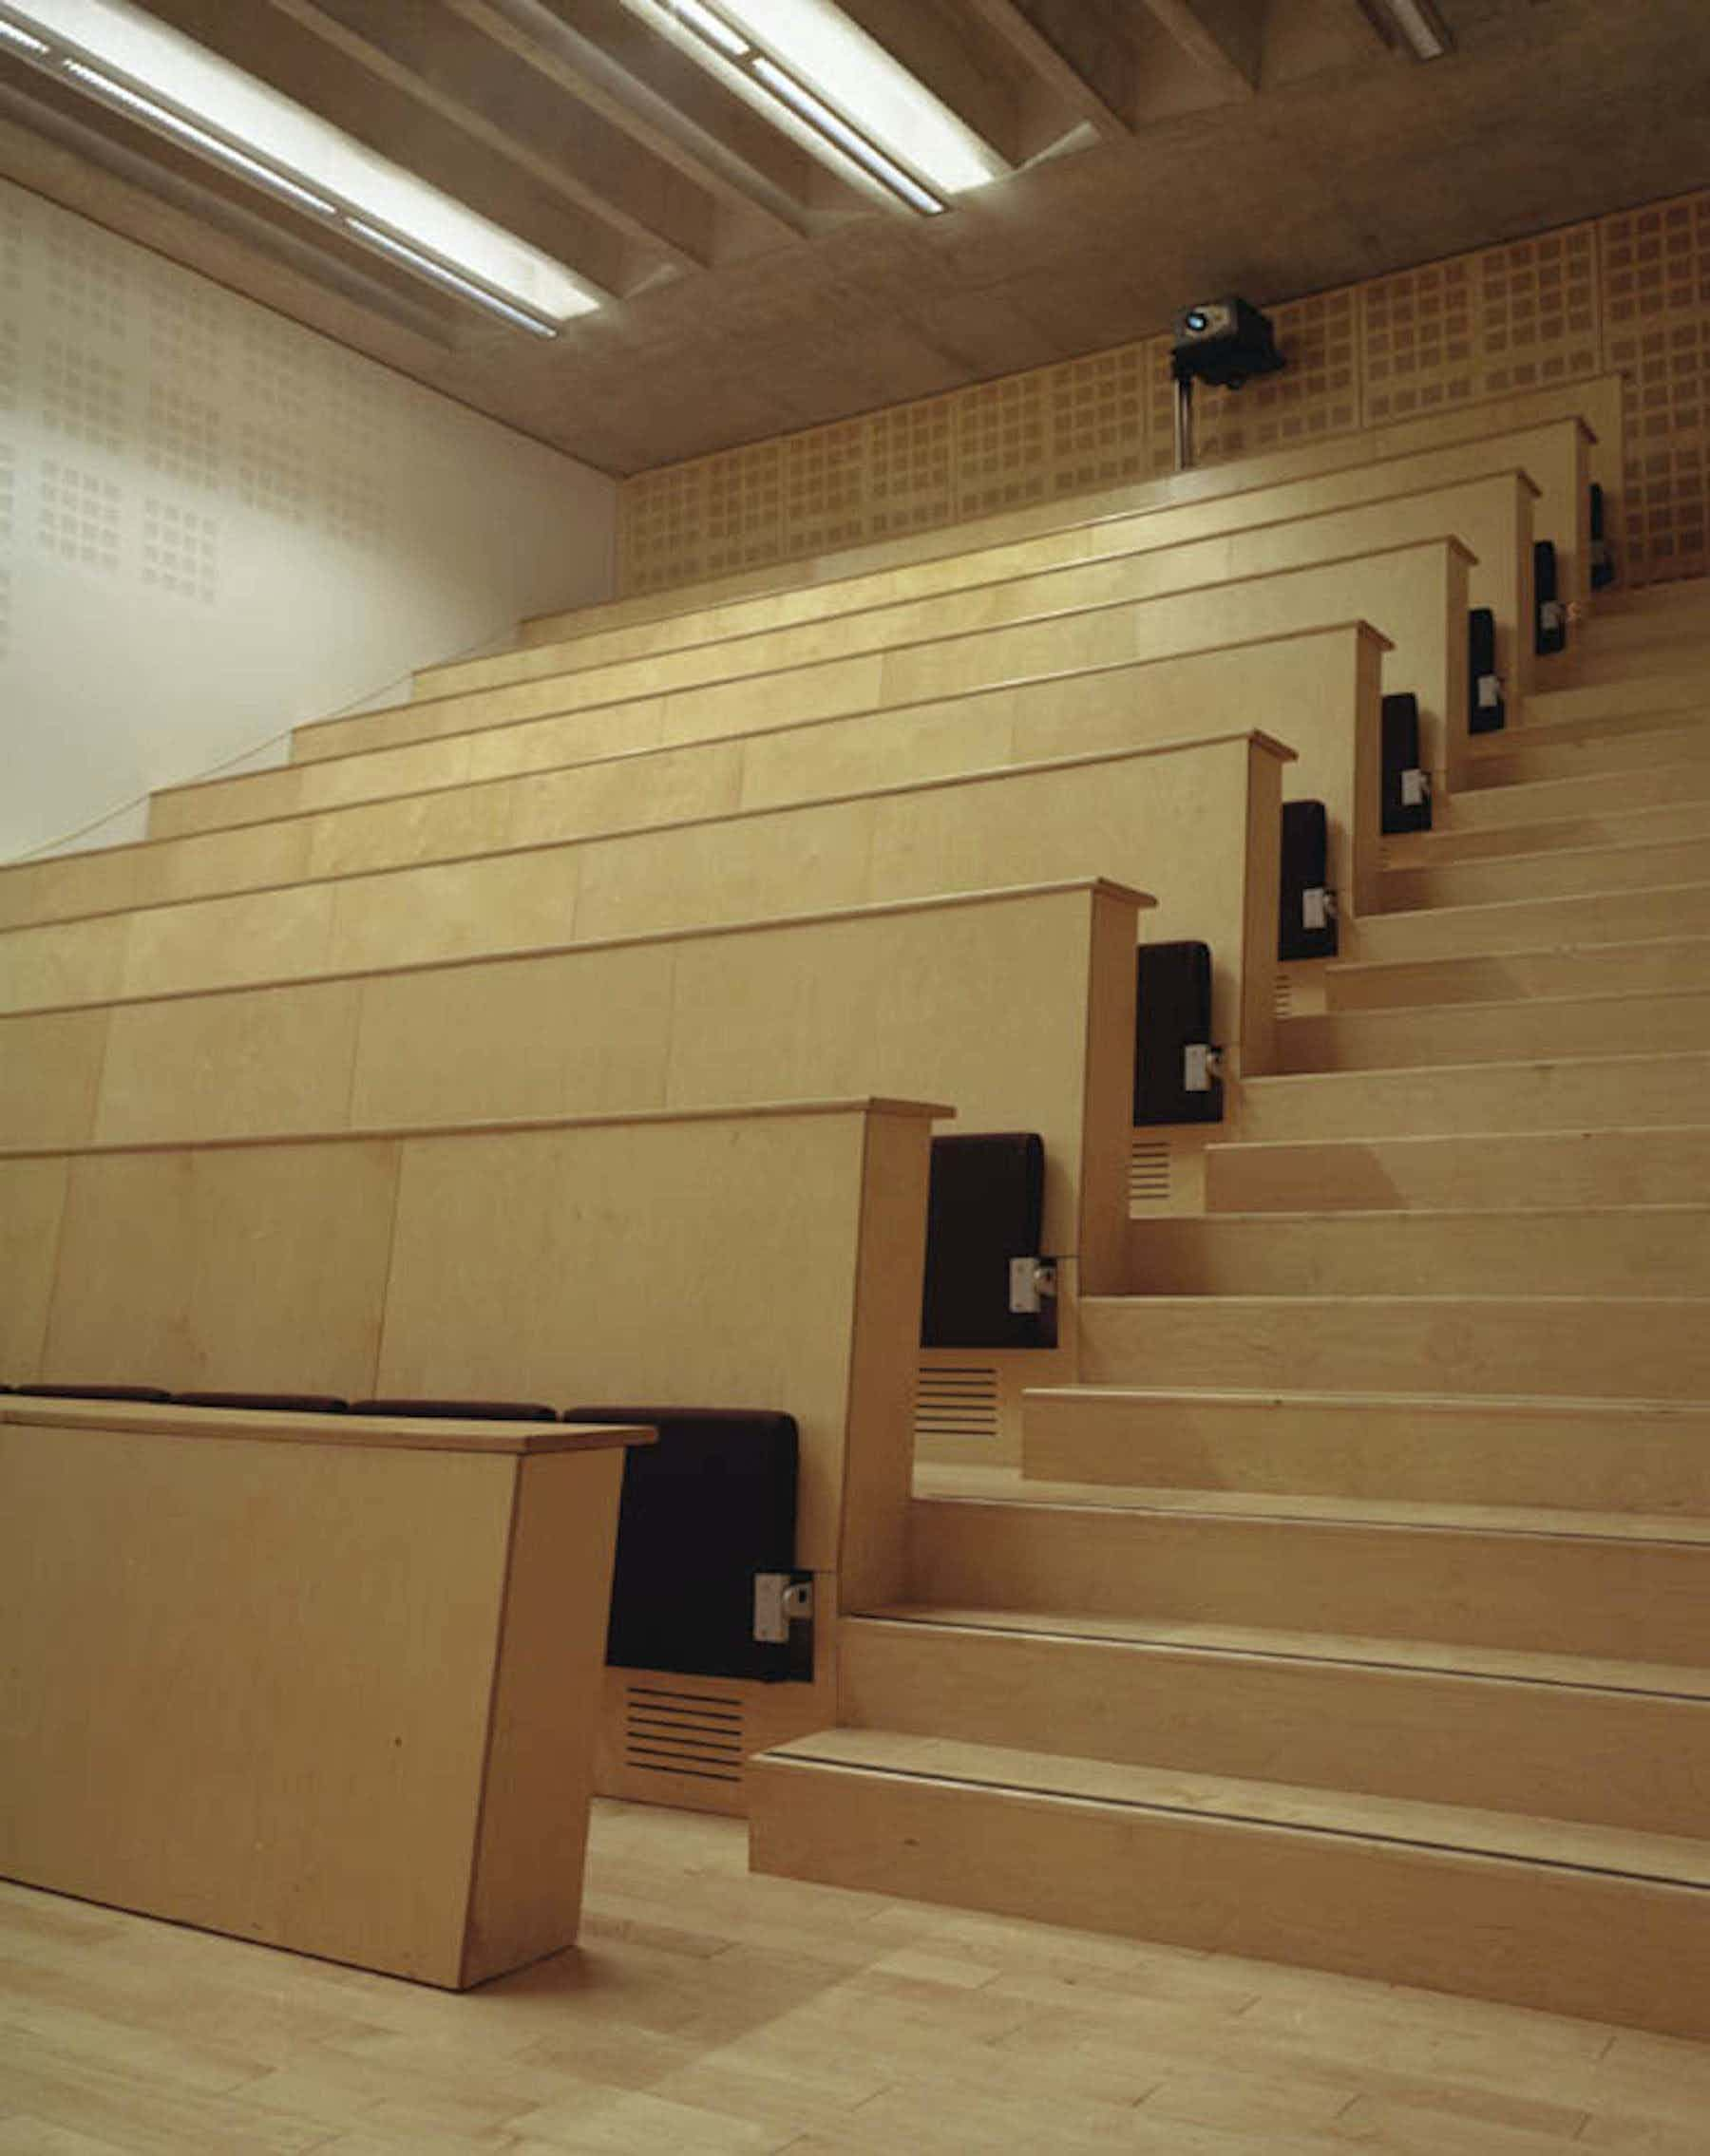 Lecture Theatre, Laban Building